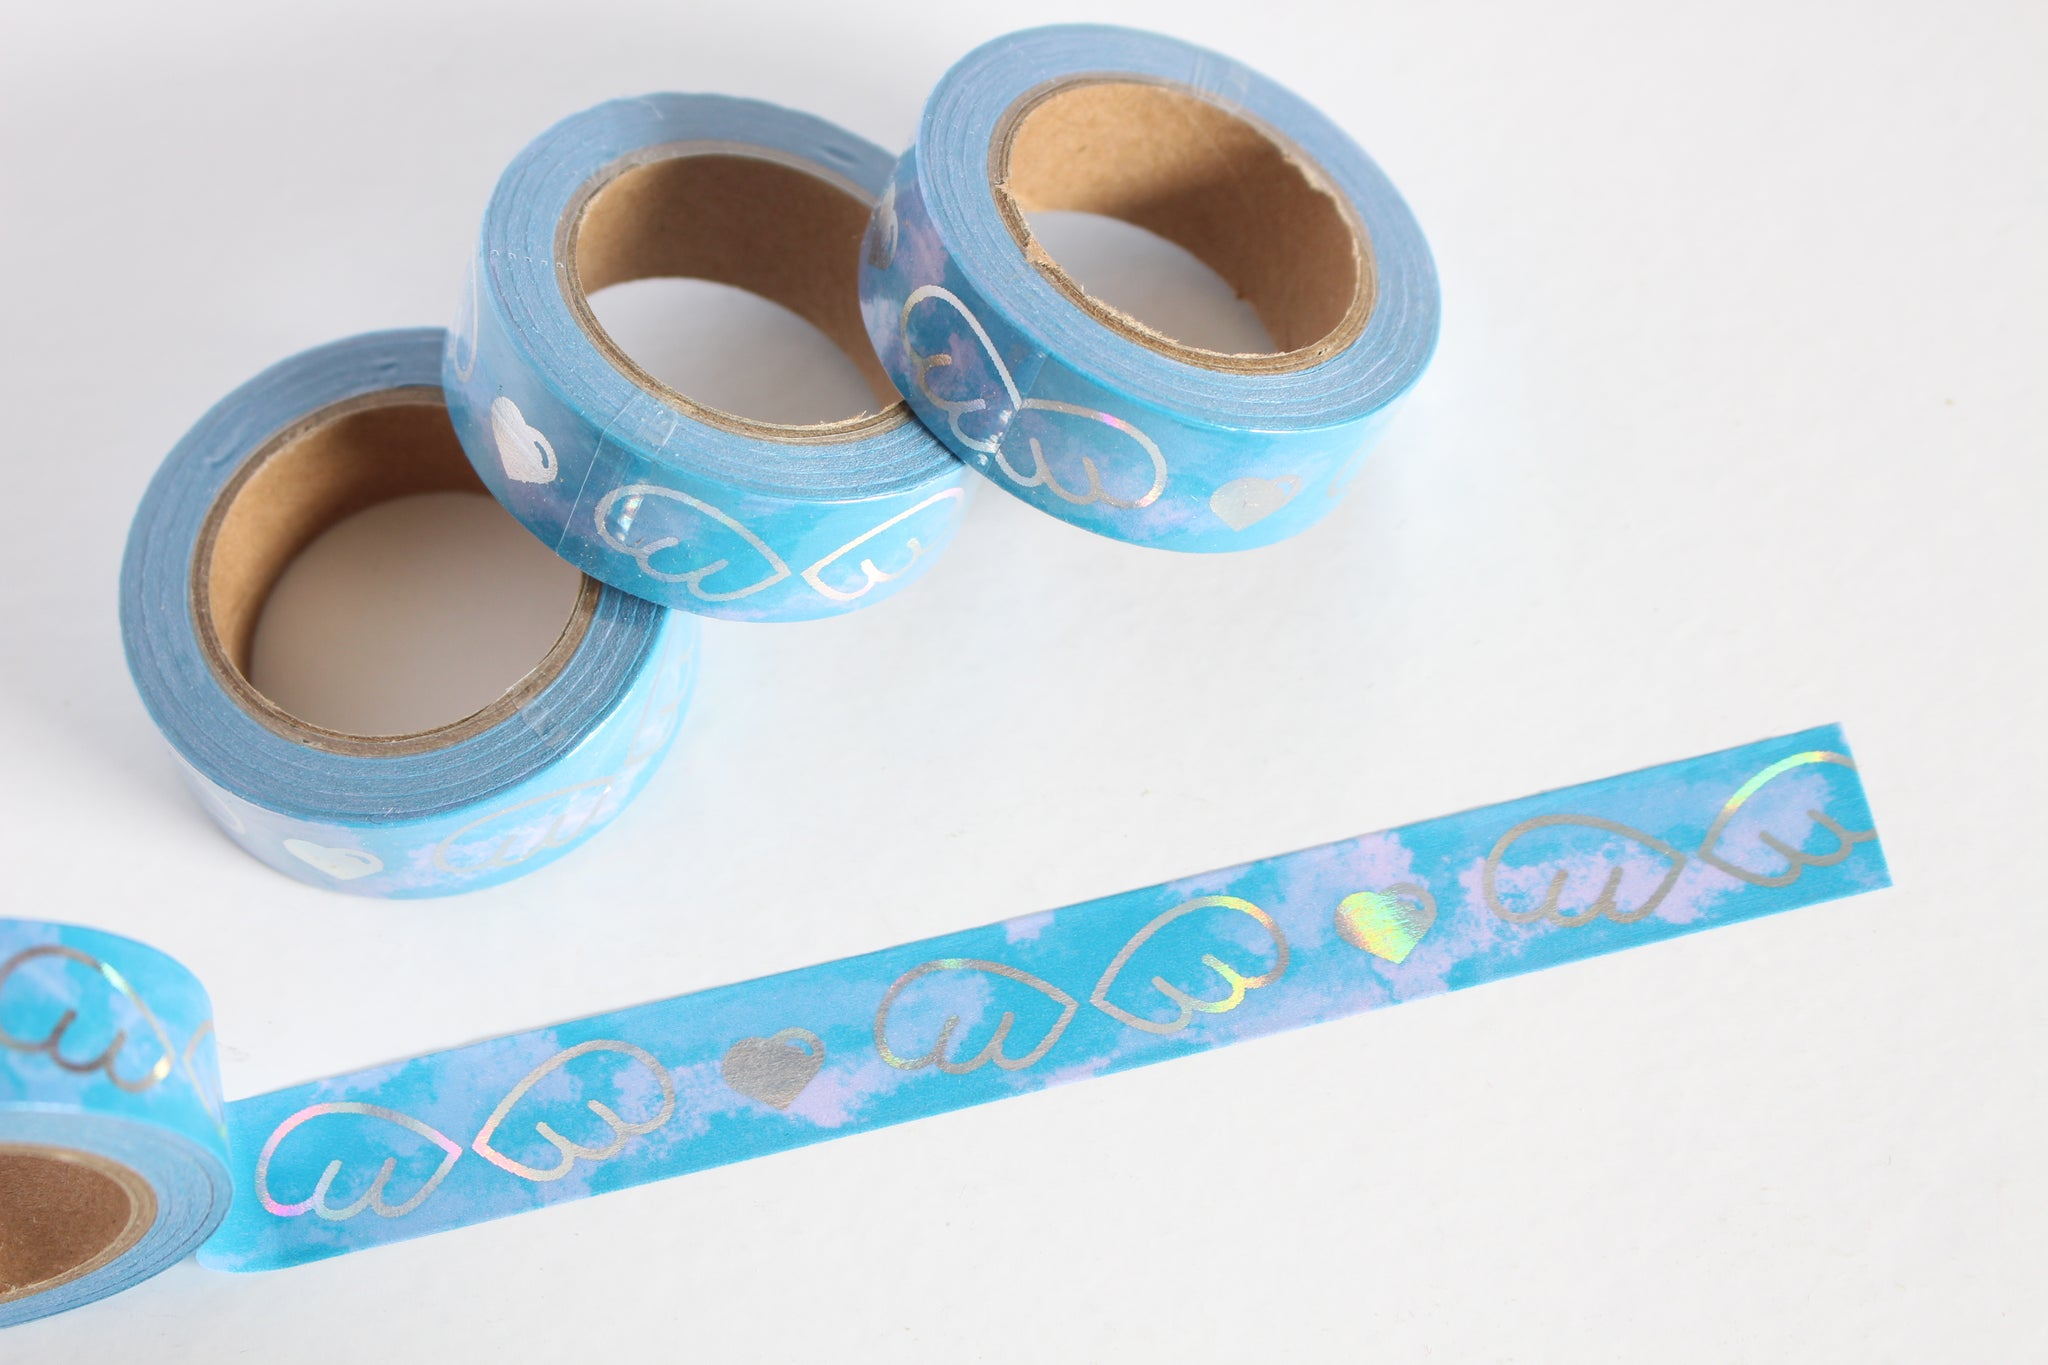 Sky Blue with Holographic Foil Angel Wings and Heart Print Washi Tape